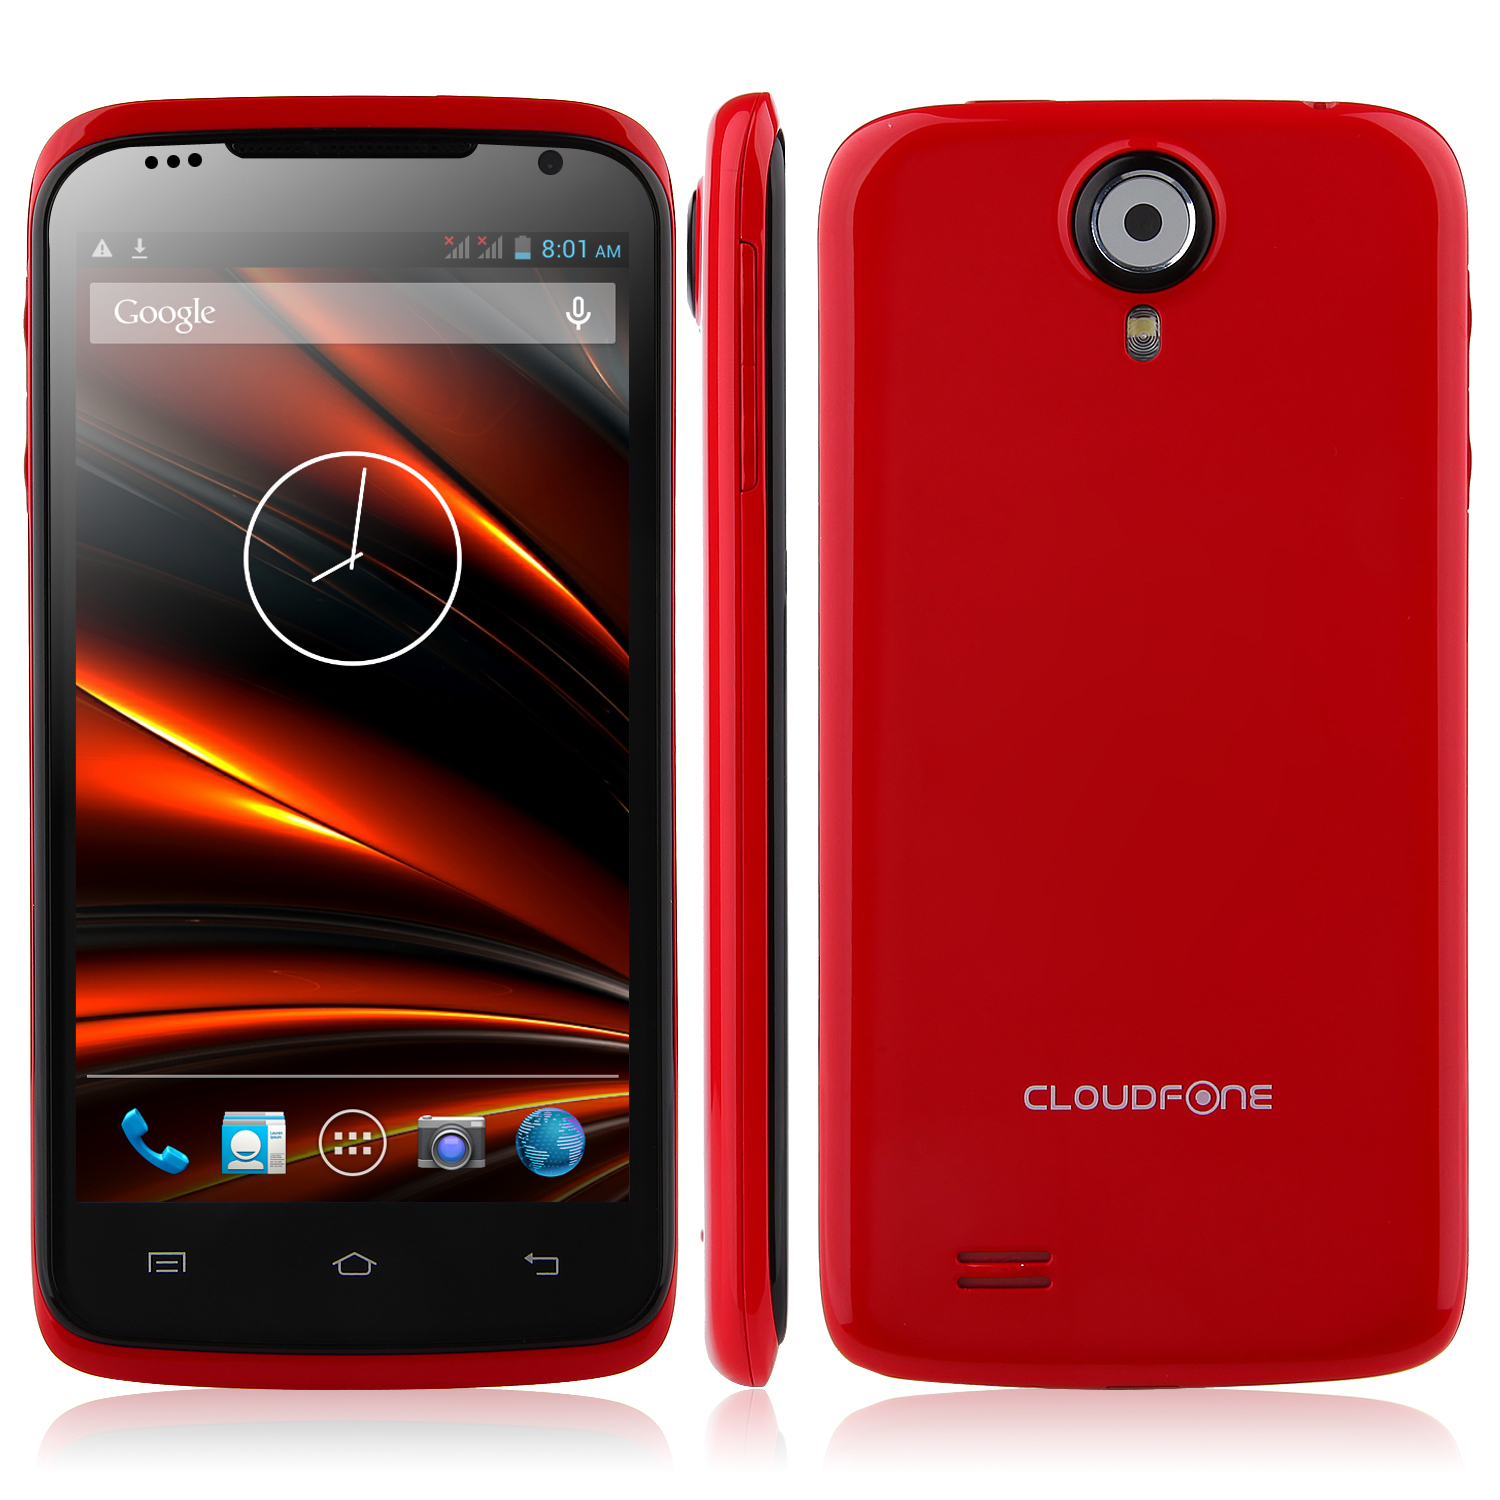 CloudFone Excite 470q Smartphone MTK6582 Android 4.2 1GB 4GB 4.7 Inch 3G GPS- Red